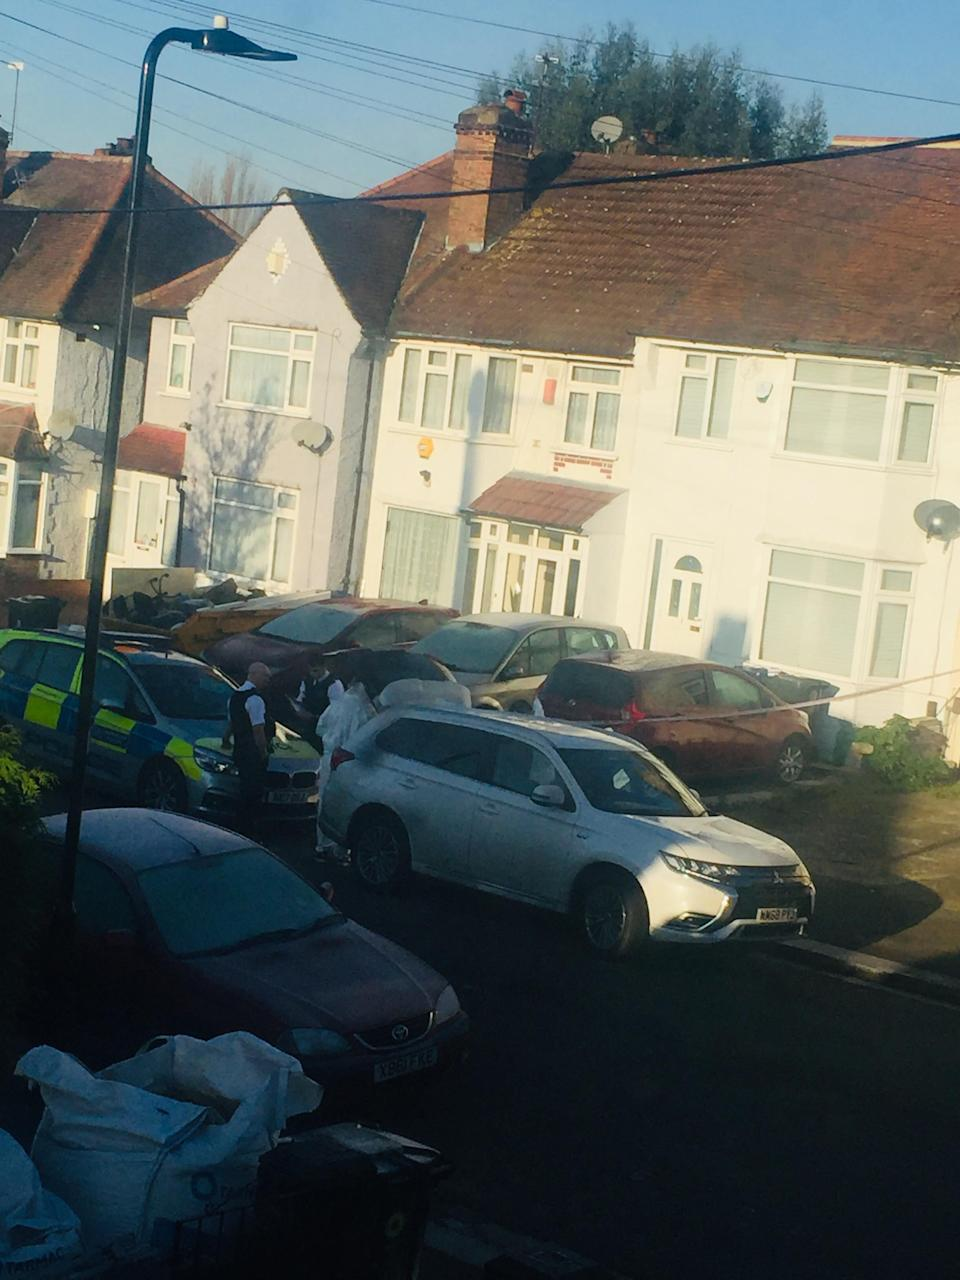 <p>Forensics sweep the scene after the murder in Drew Gardens</p>Supplied